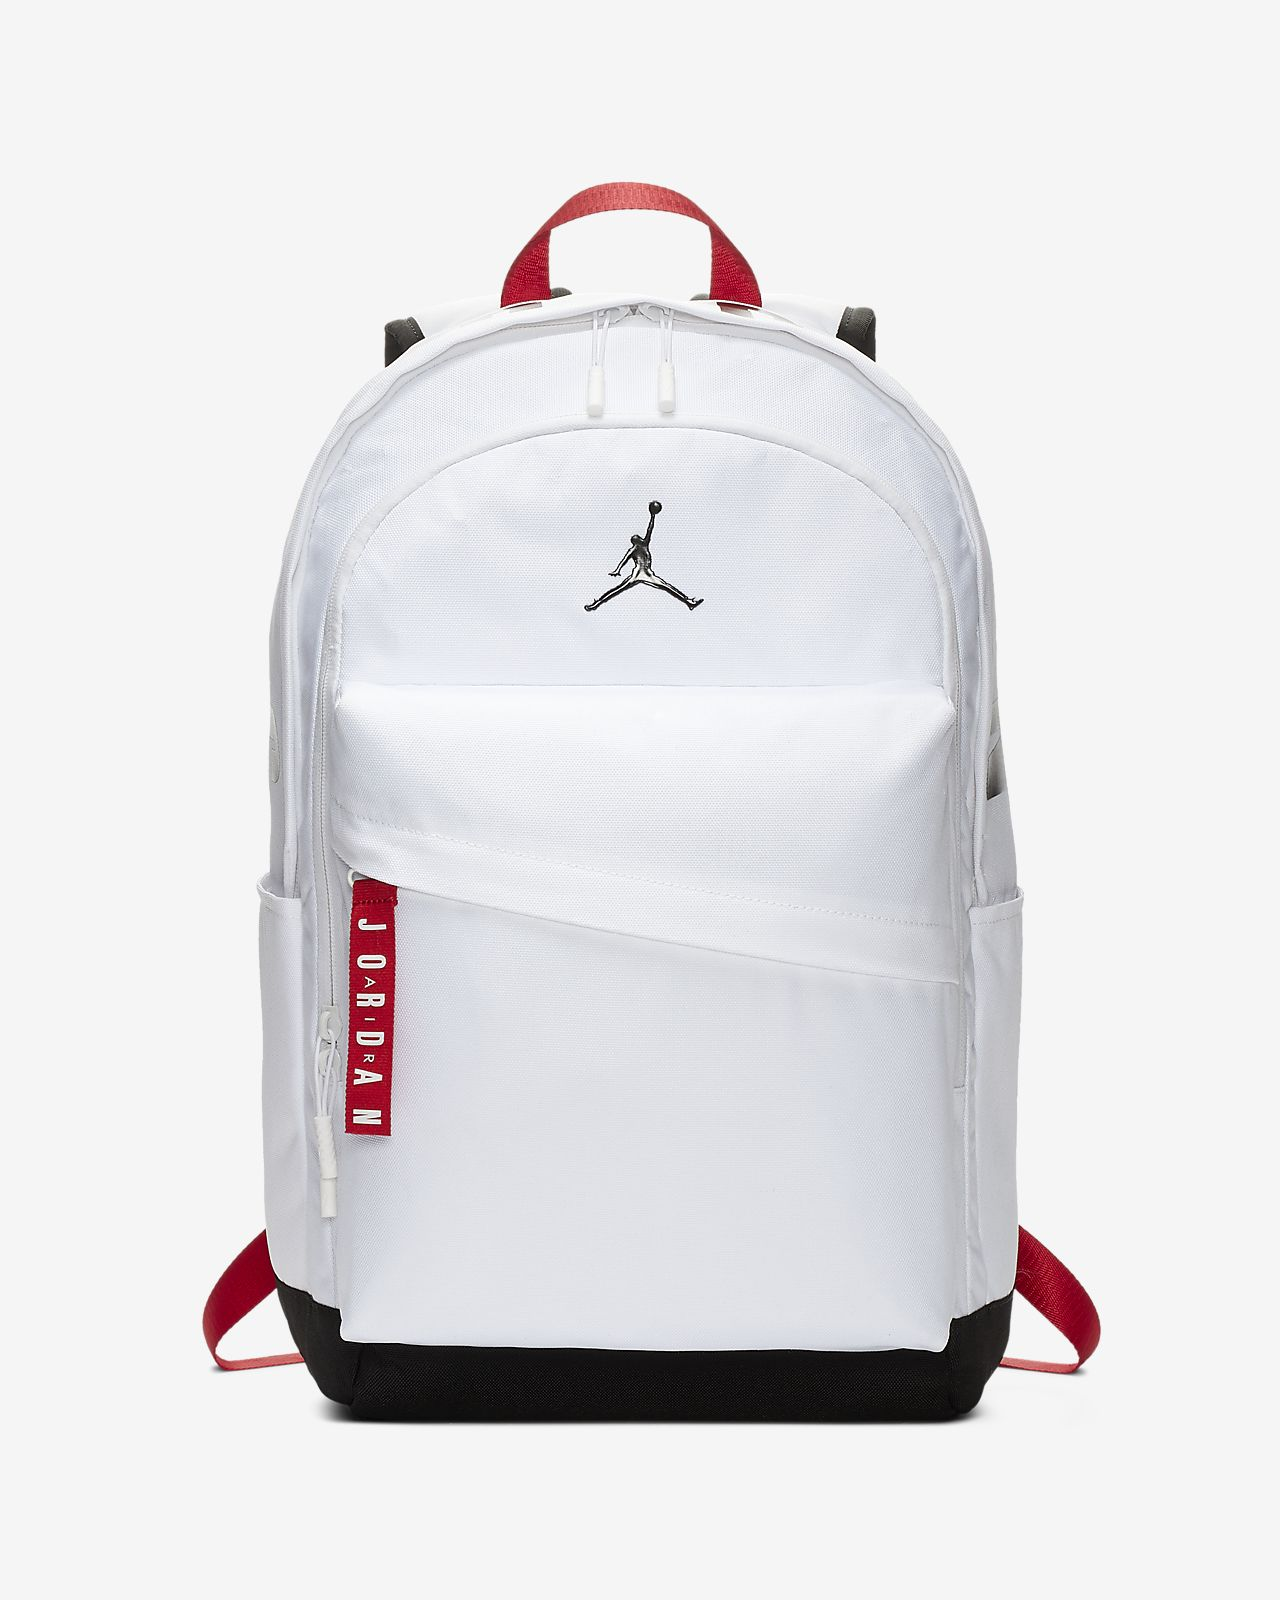 1e1e8400293b Backpack. Jordan Air Patrol. 60 €. Low Resolution ...